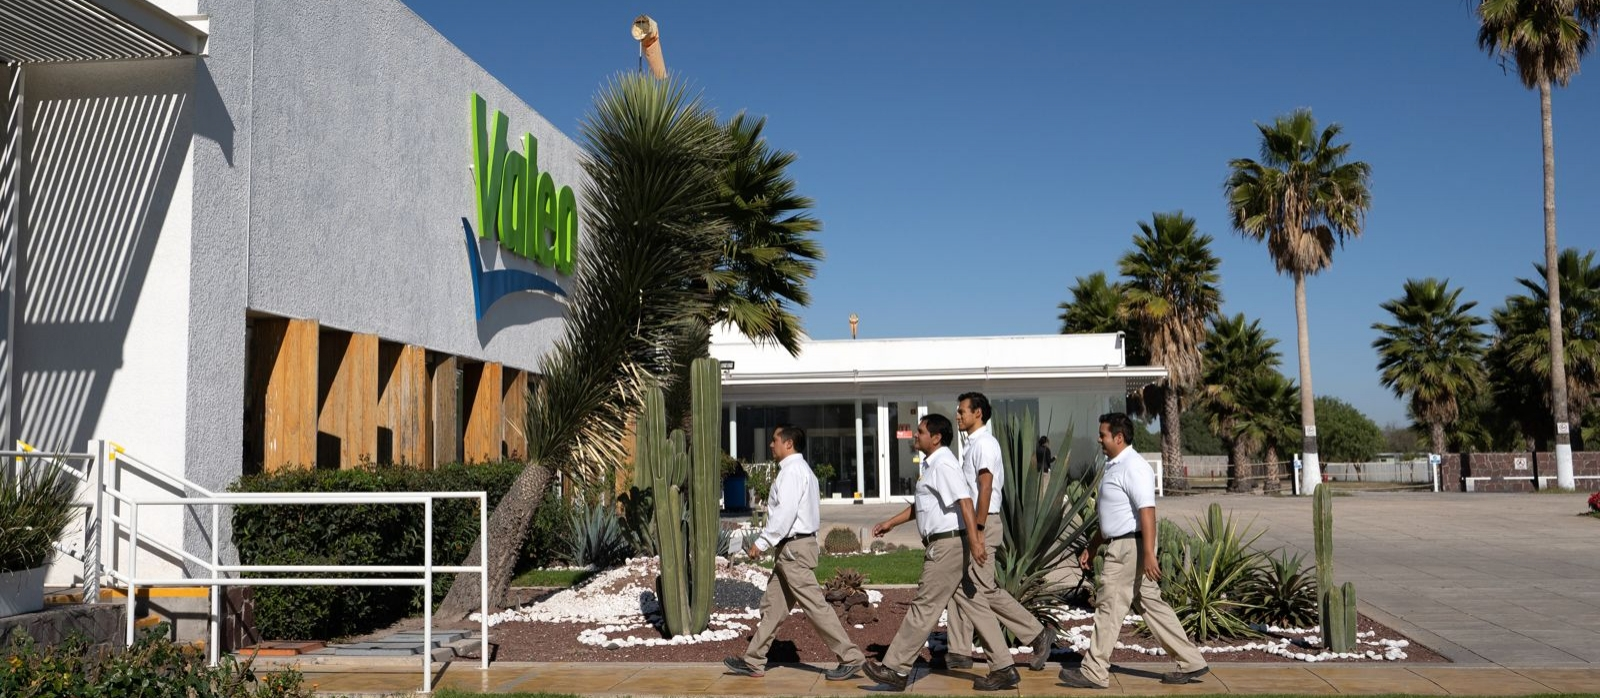 Valeo workers in Mexico plant